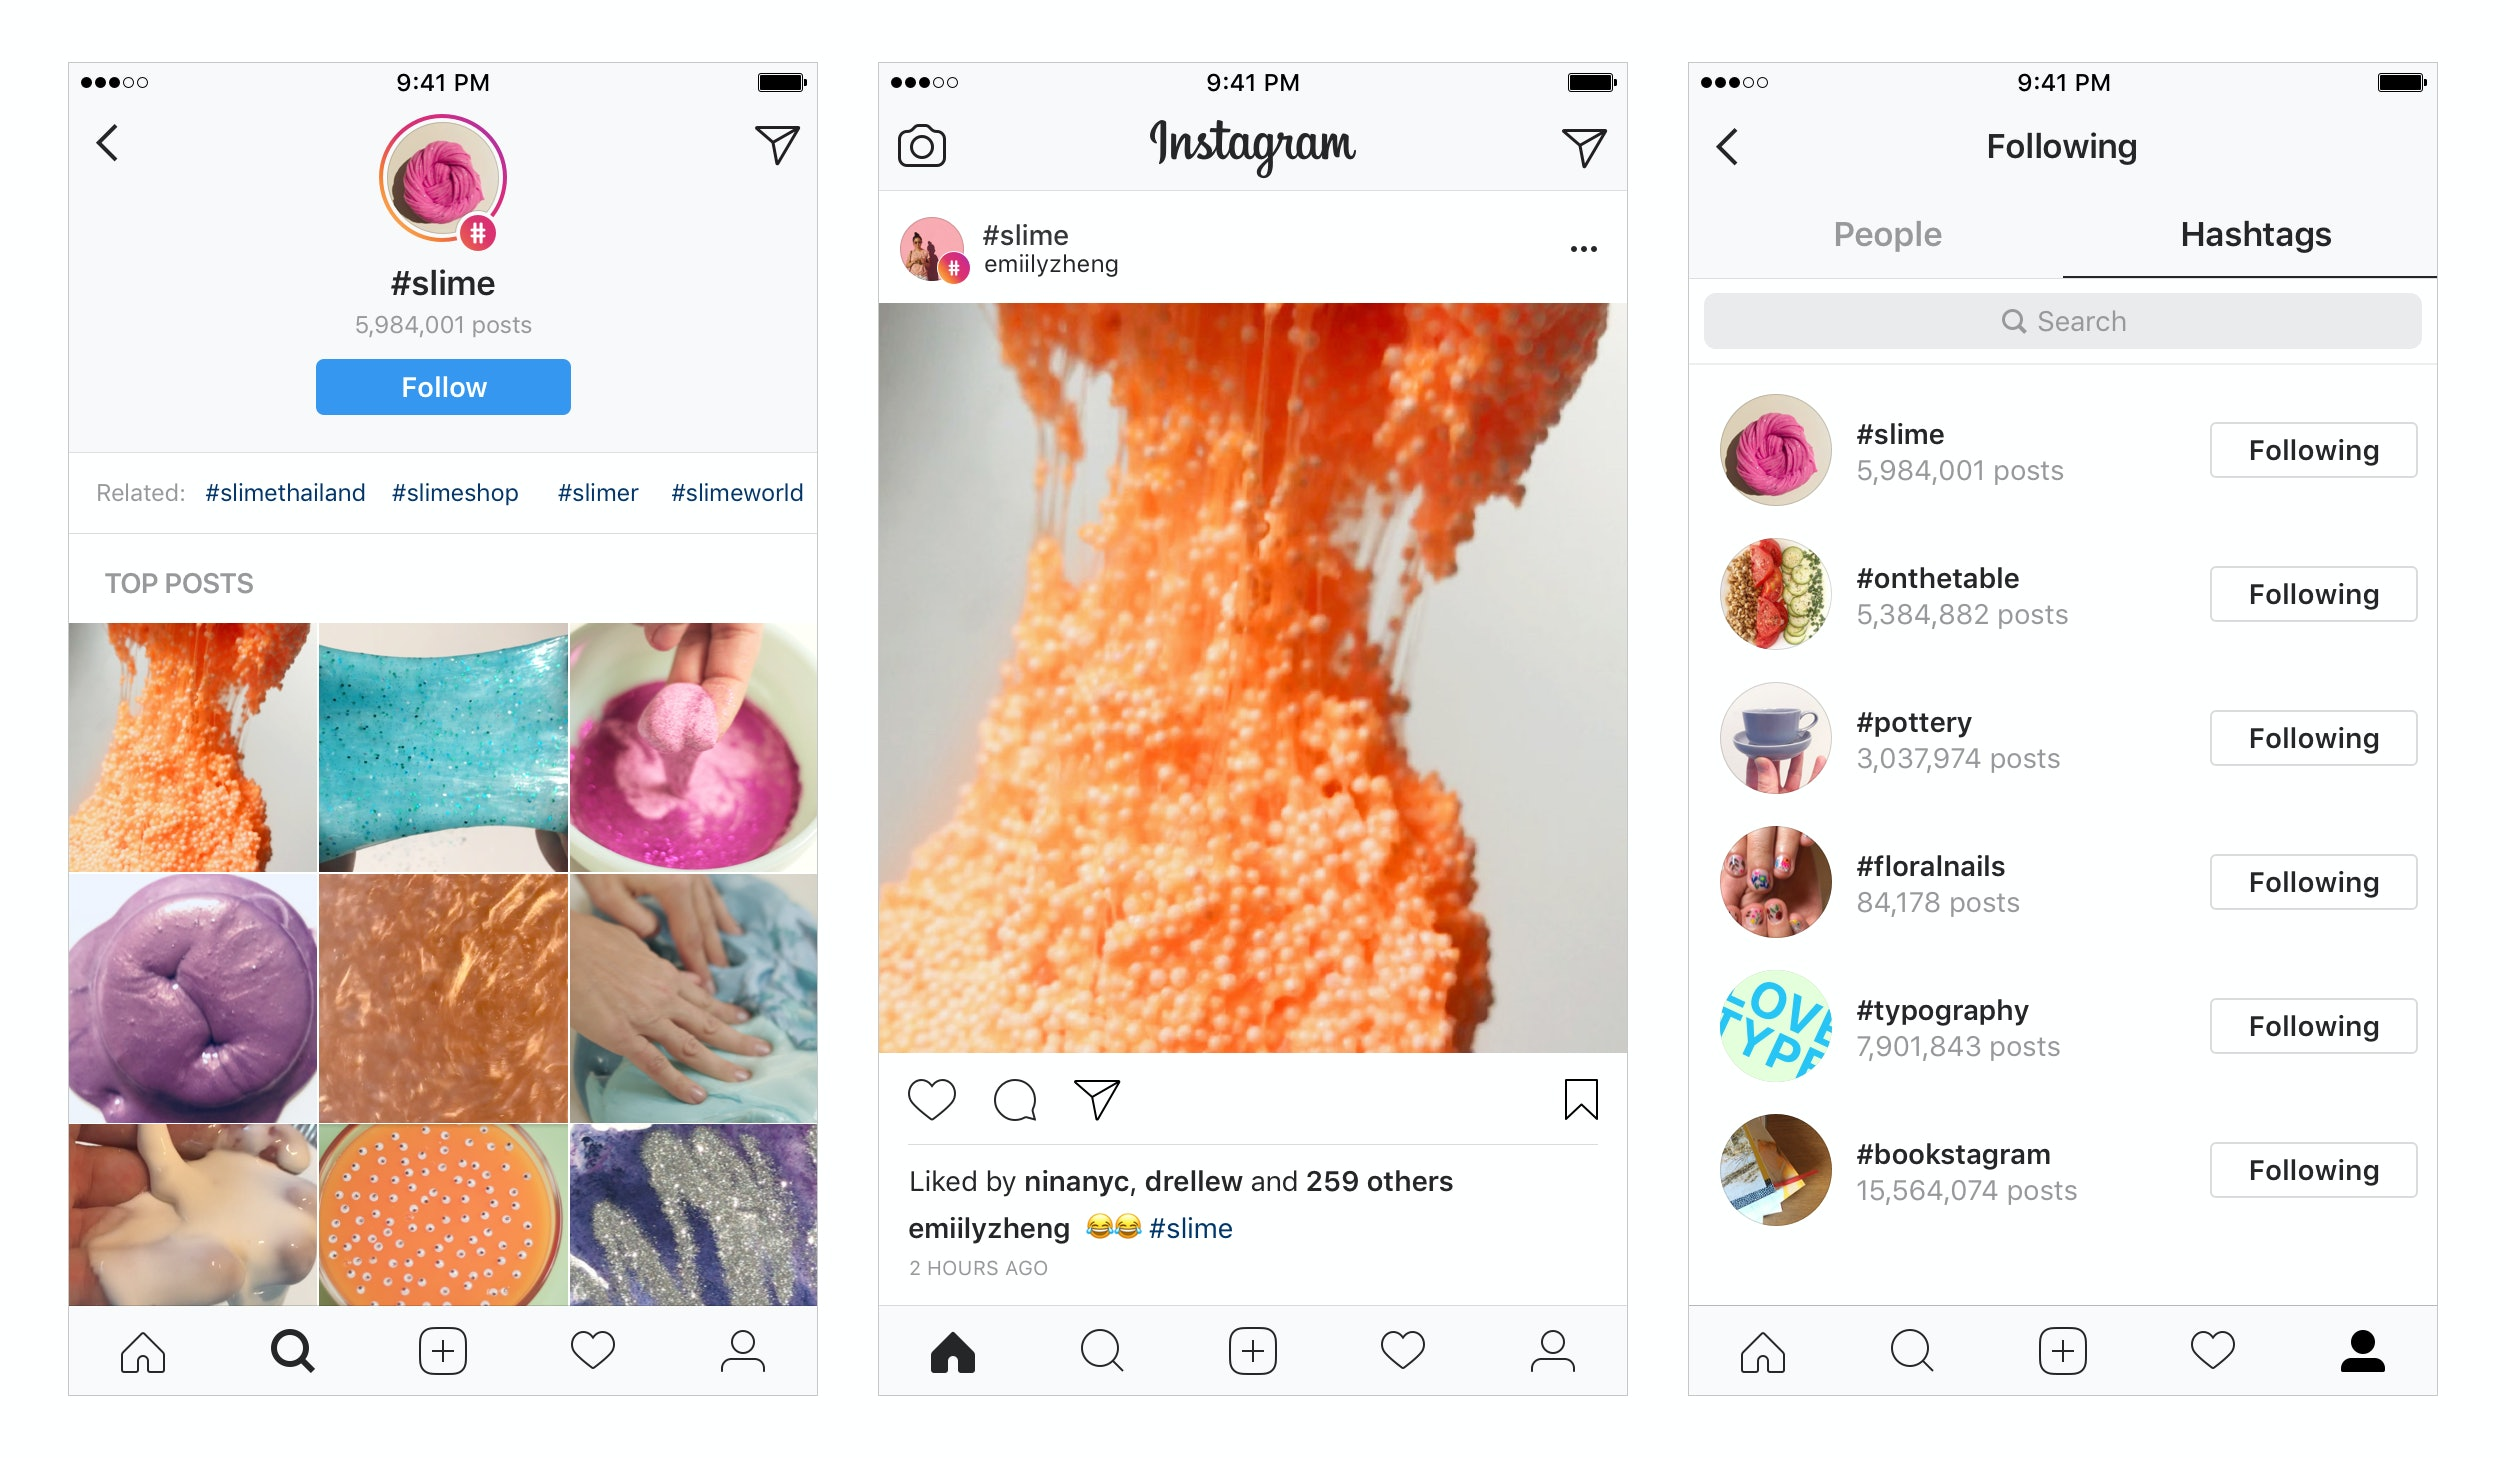 Instagram Radically Transforms Its Feed With Major New Update